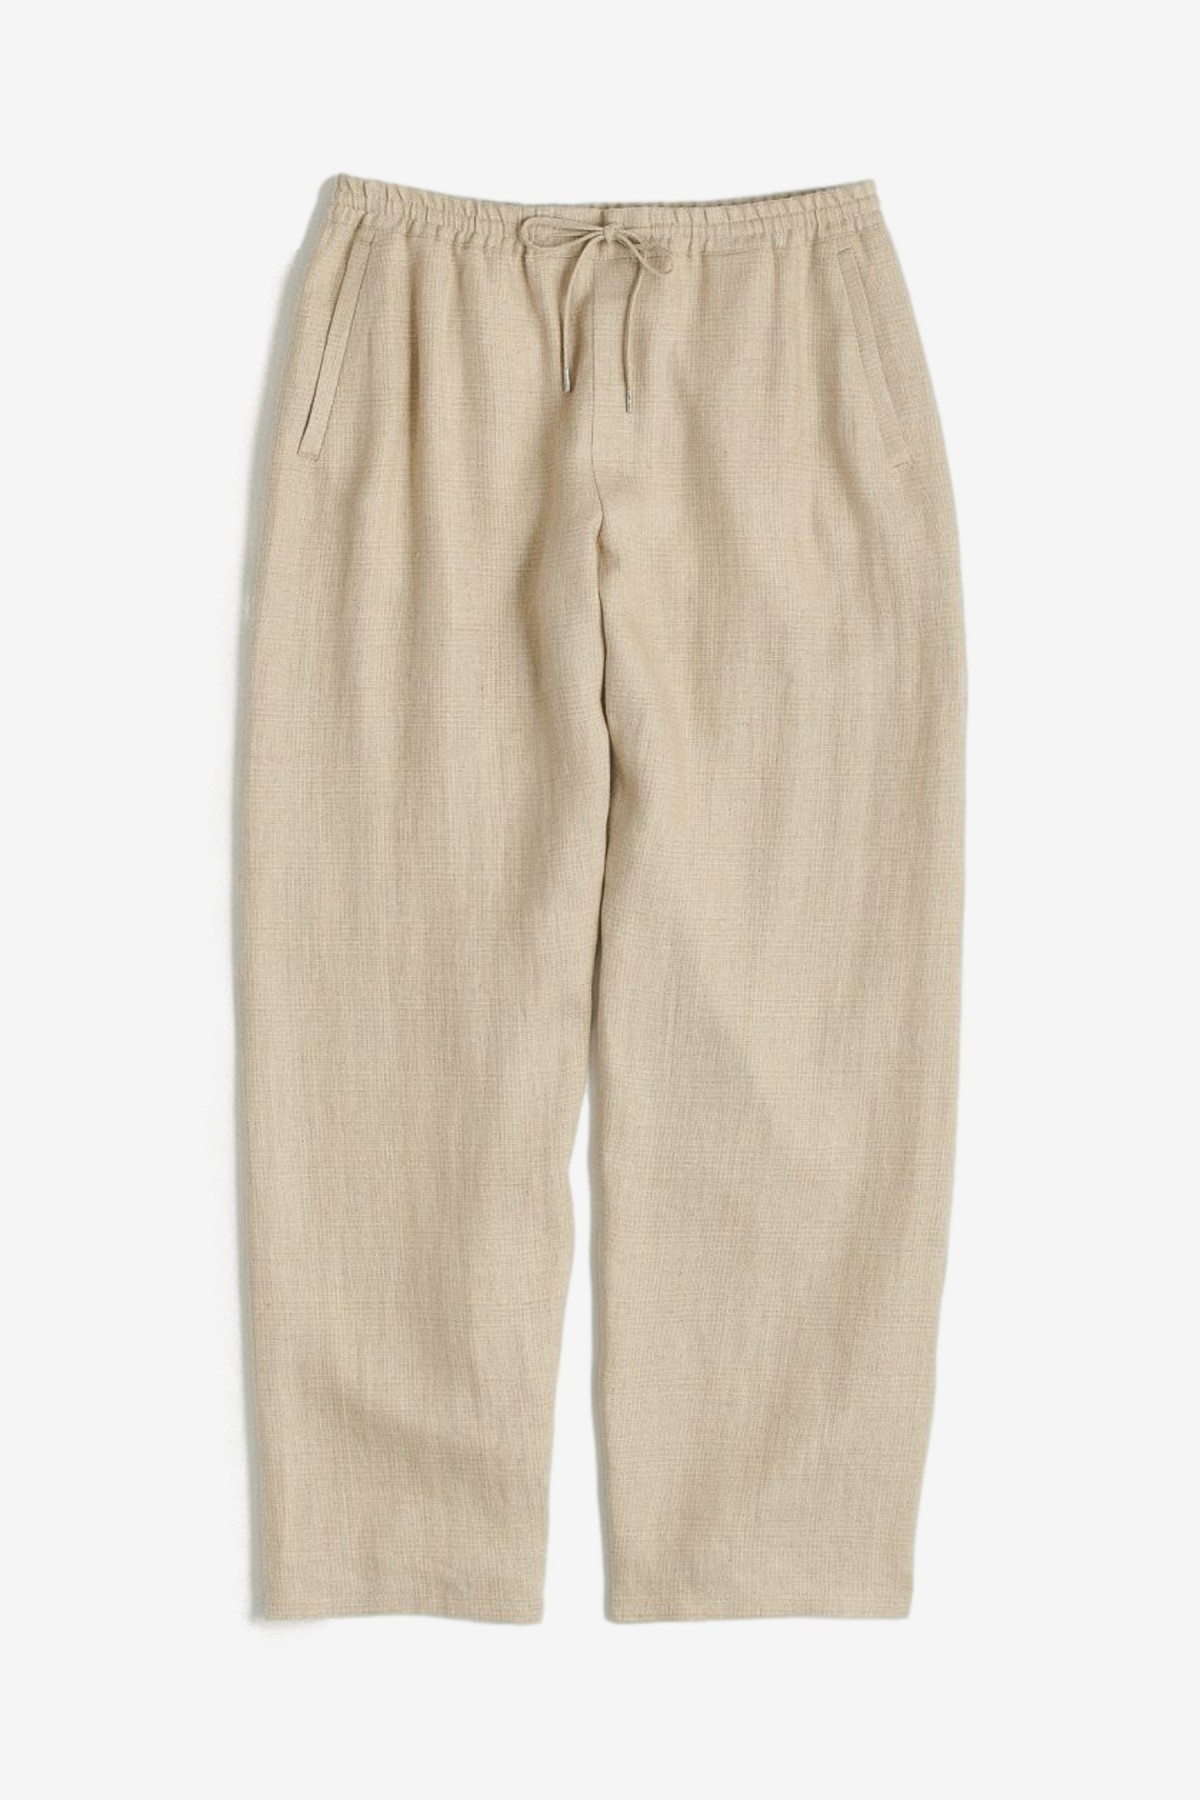 A Kind of Guise Samurai Trousers in Desert Check